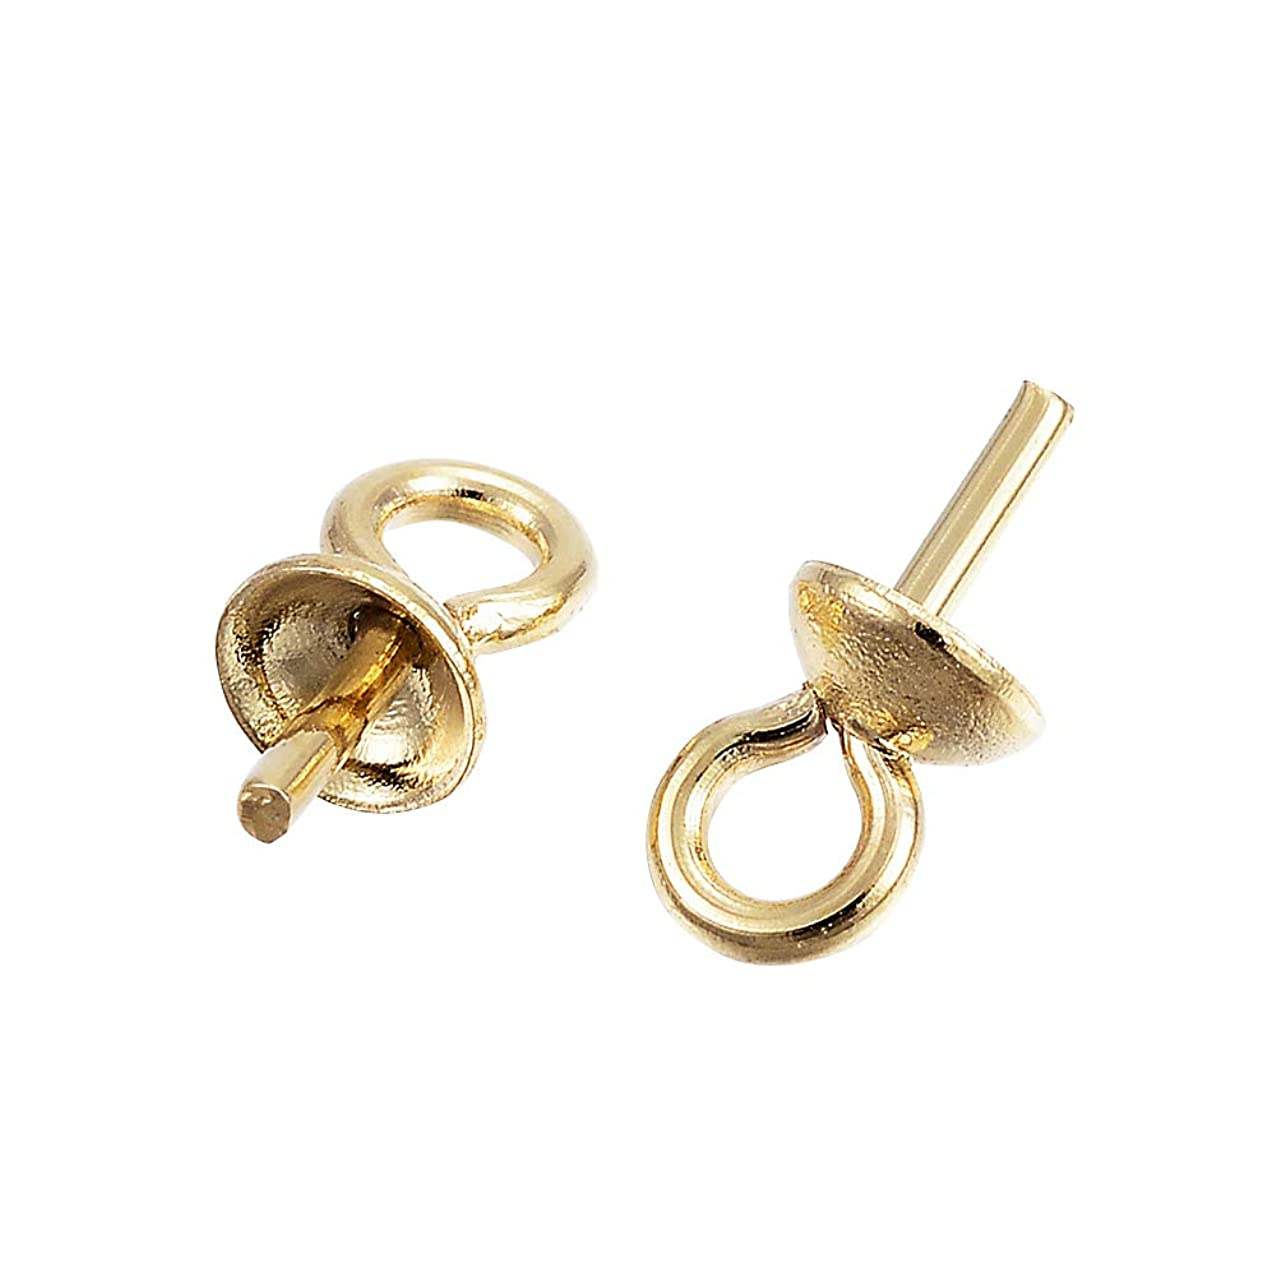 UNICRAFTABLE 100pcs 304 Stainless Steel Cup Pearl Bail Pin Pendants for Half Drilled Beads with 0.8mm Pin Golden Cup Pearl Screw Eye Pin Bail Peg Pendants for Jewelry Making 7x4mm